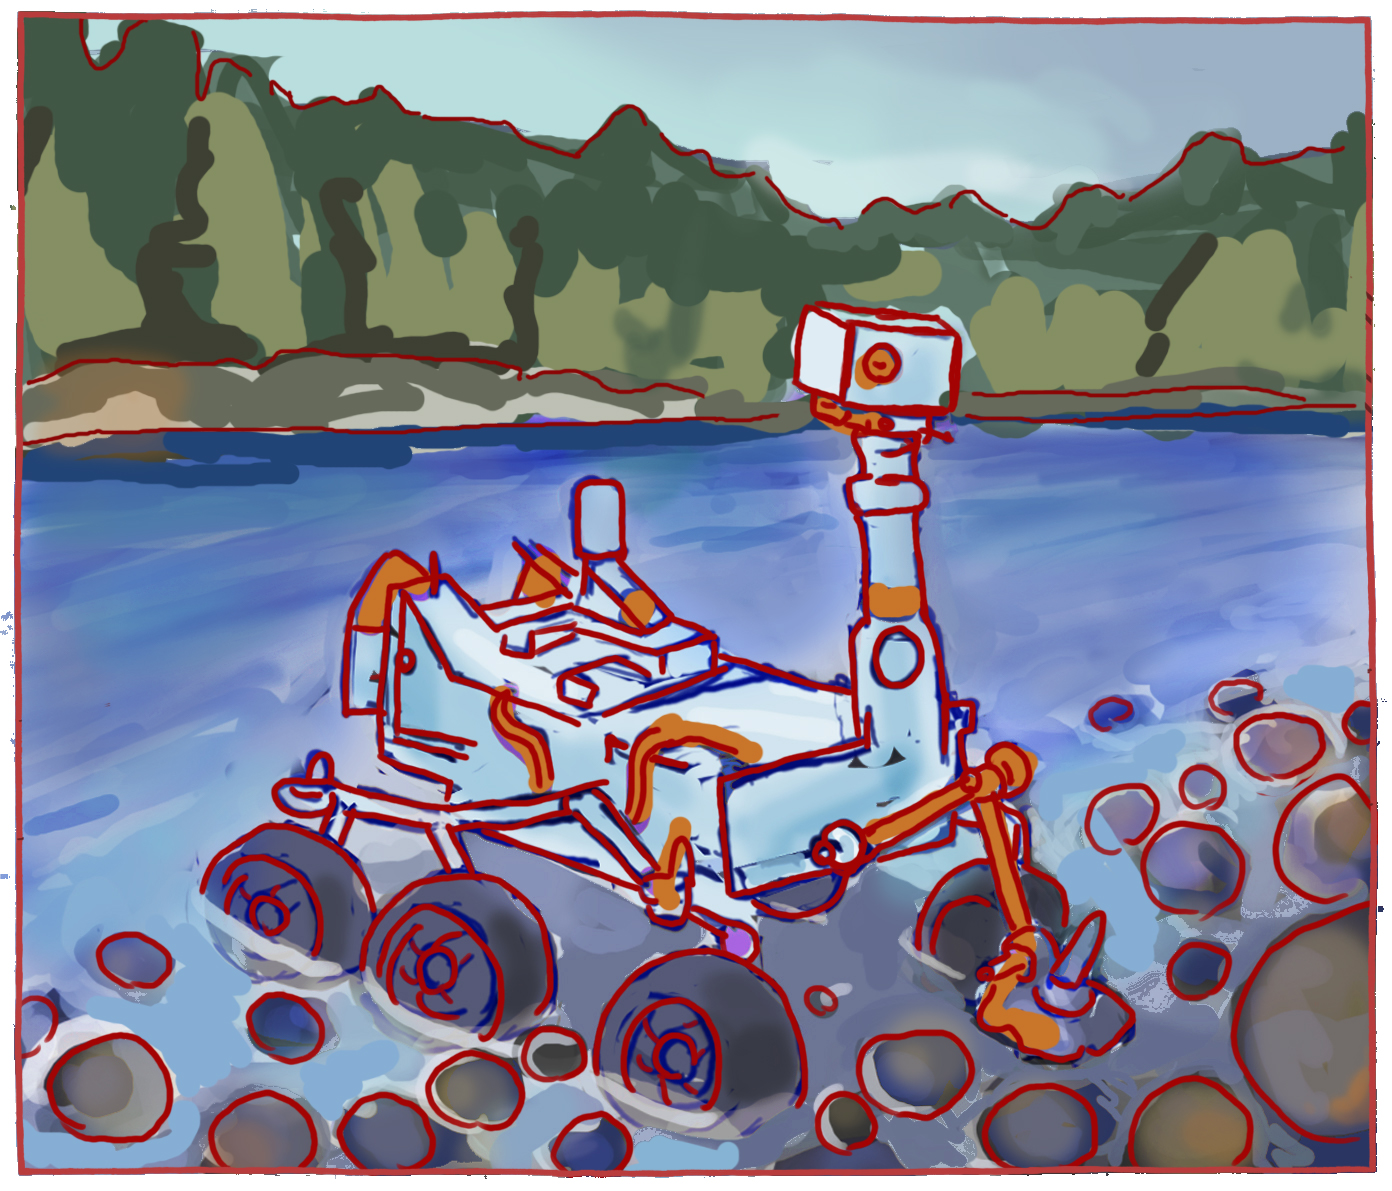 Concept 5: Mars Rover on the Canadian Shield, examining stromatolites